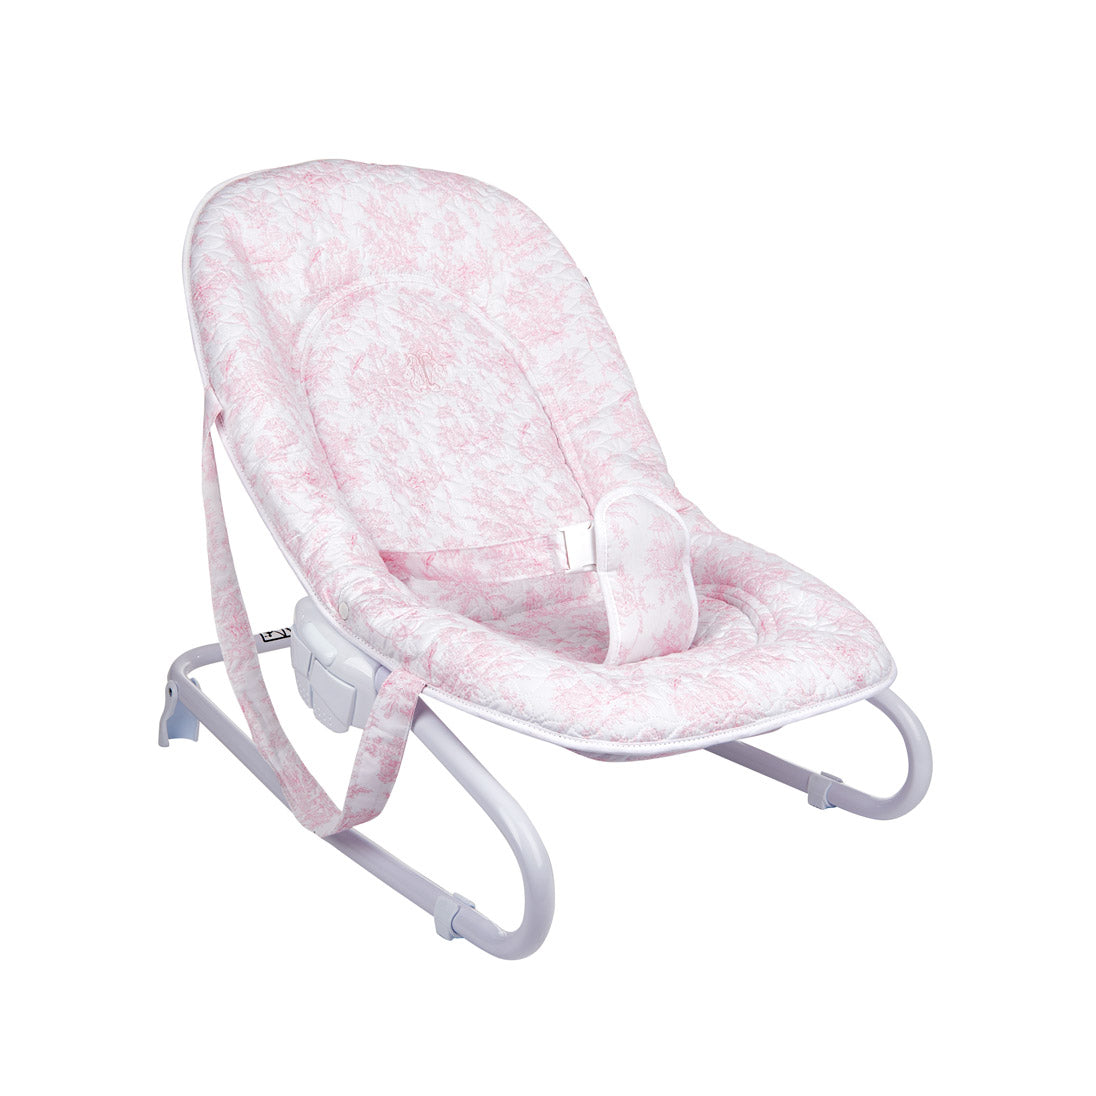 Theophile & Patachou Baby Seat Quilted - Sweet Pink